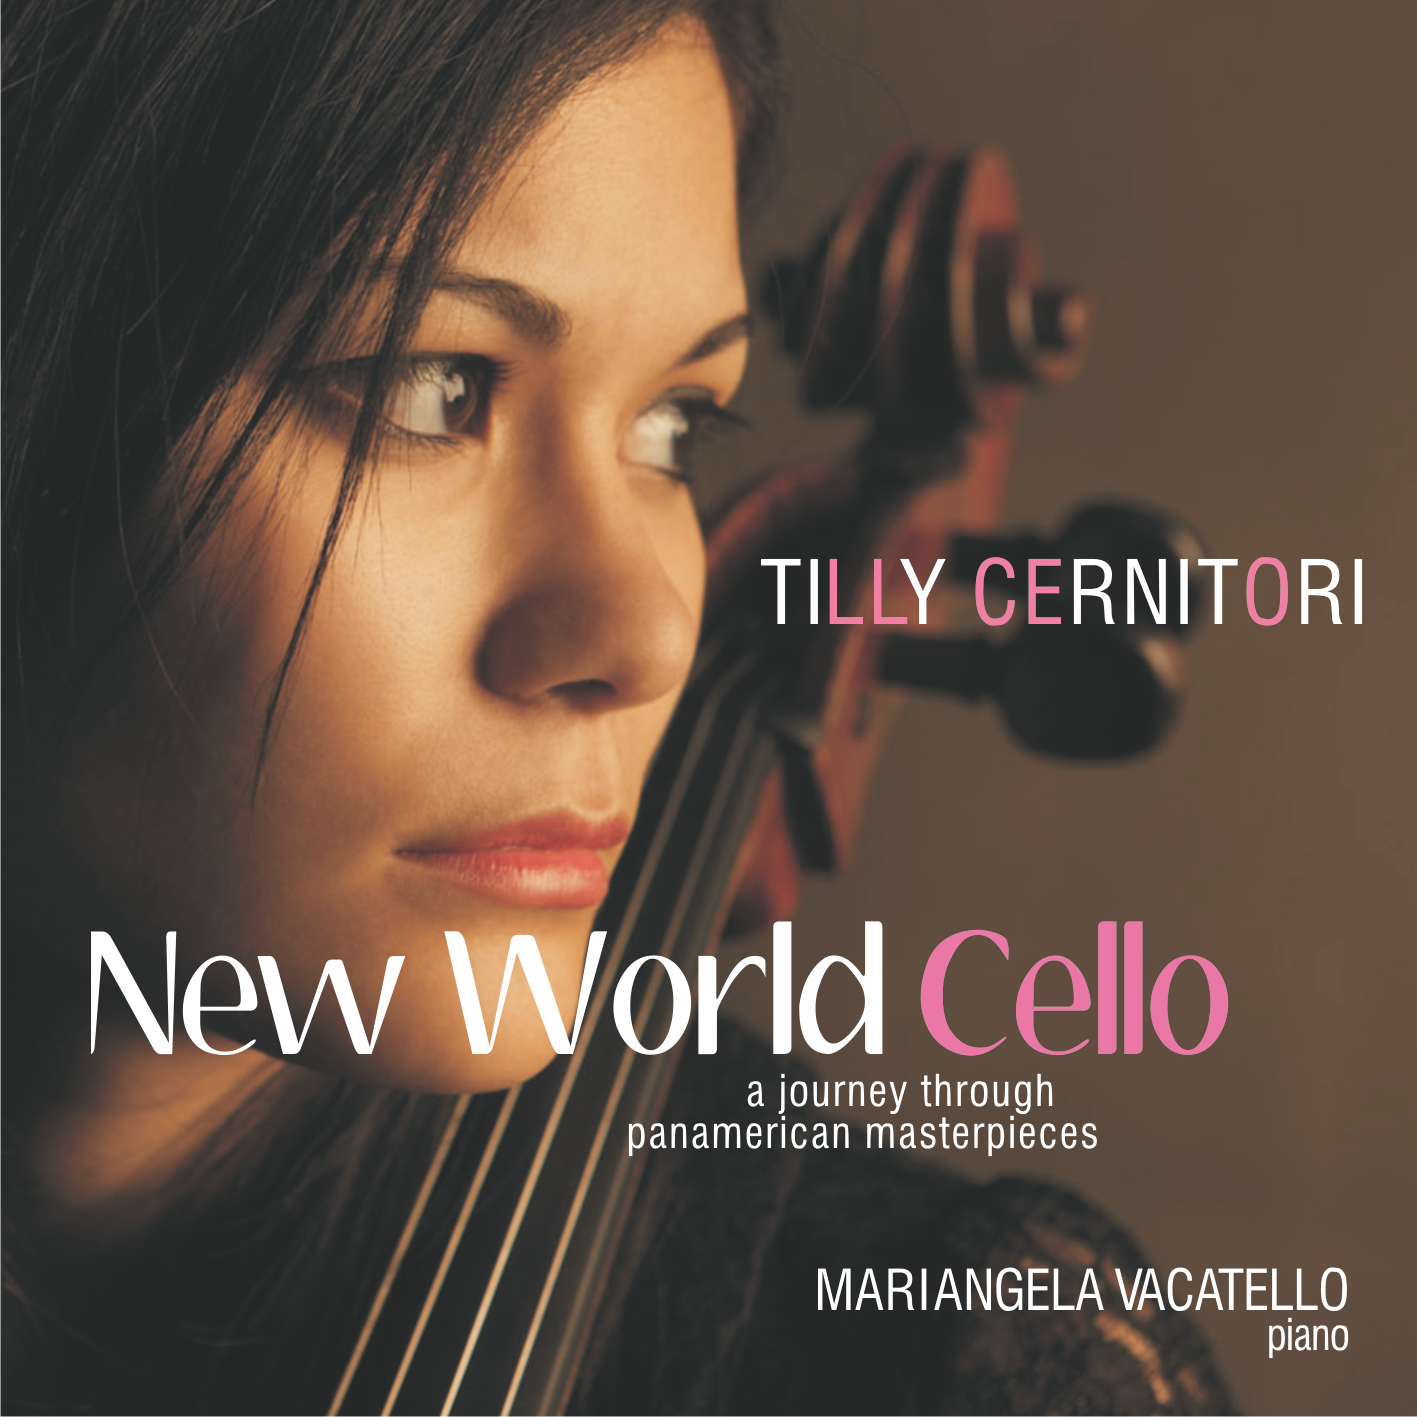 NEW WORLD CELLO - Attilia Kiyoko Cernitori, celloMariangela Vacatello, piano